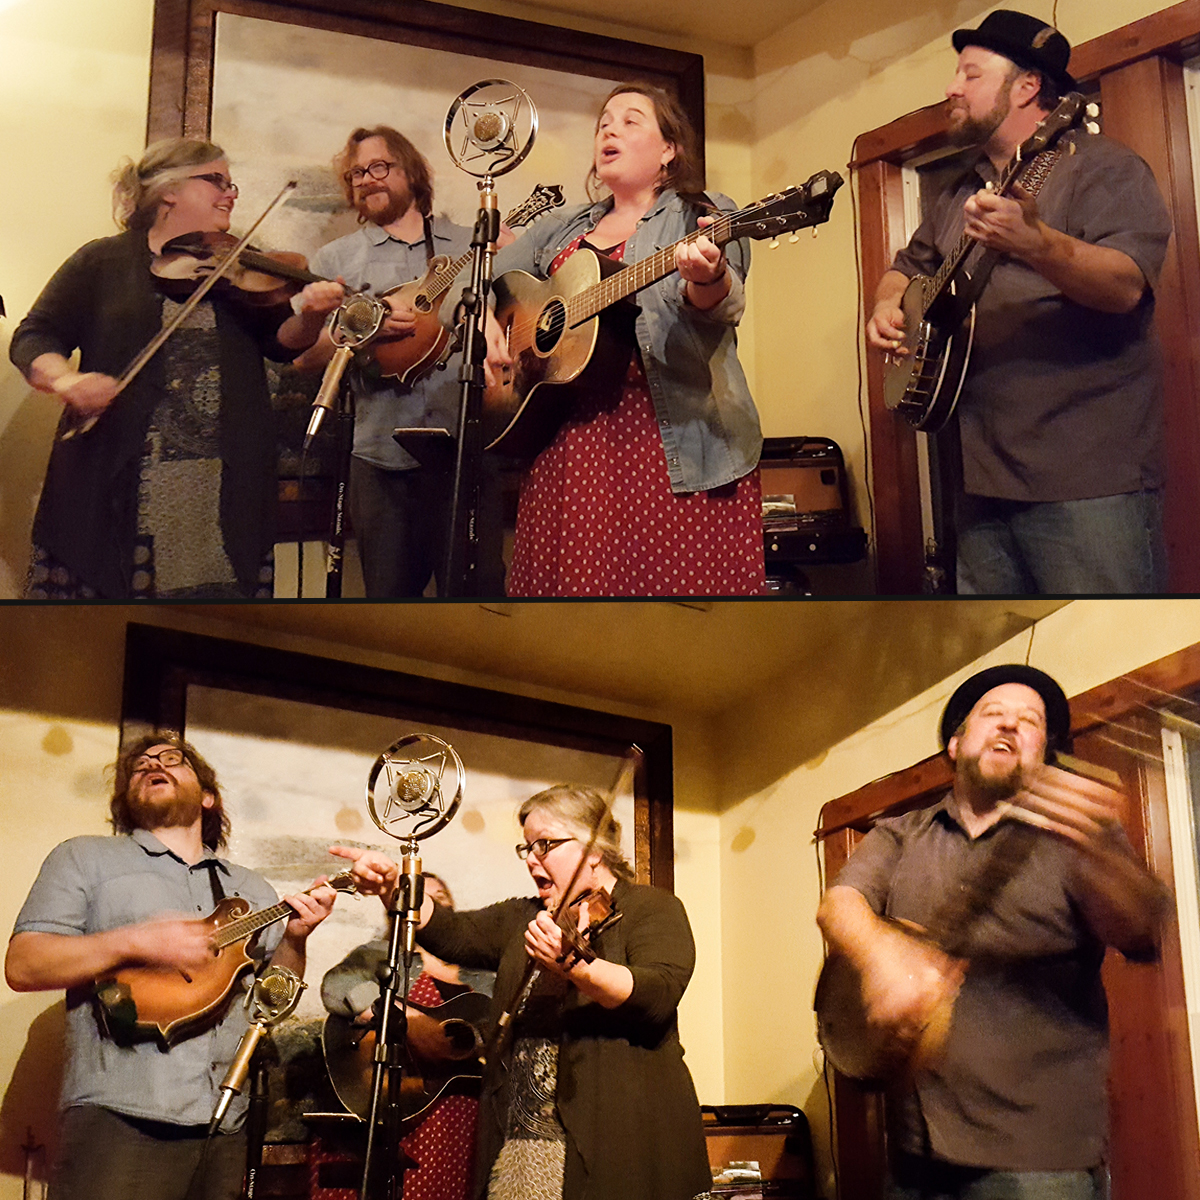 Action shots from a concert at The Rock House, Reeds Spring, Missouri (photos: Jeanette Bair)